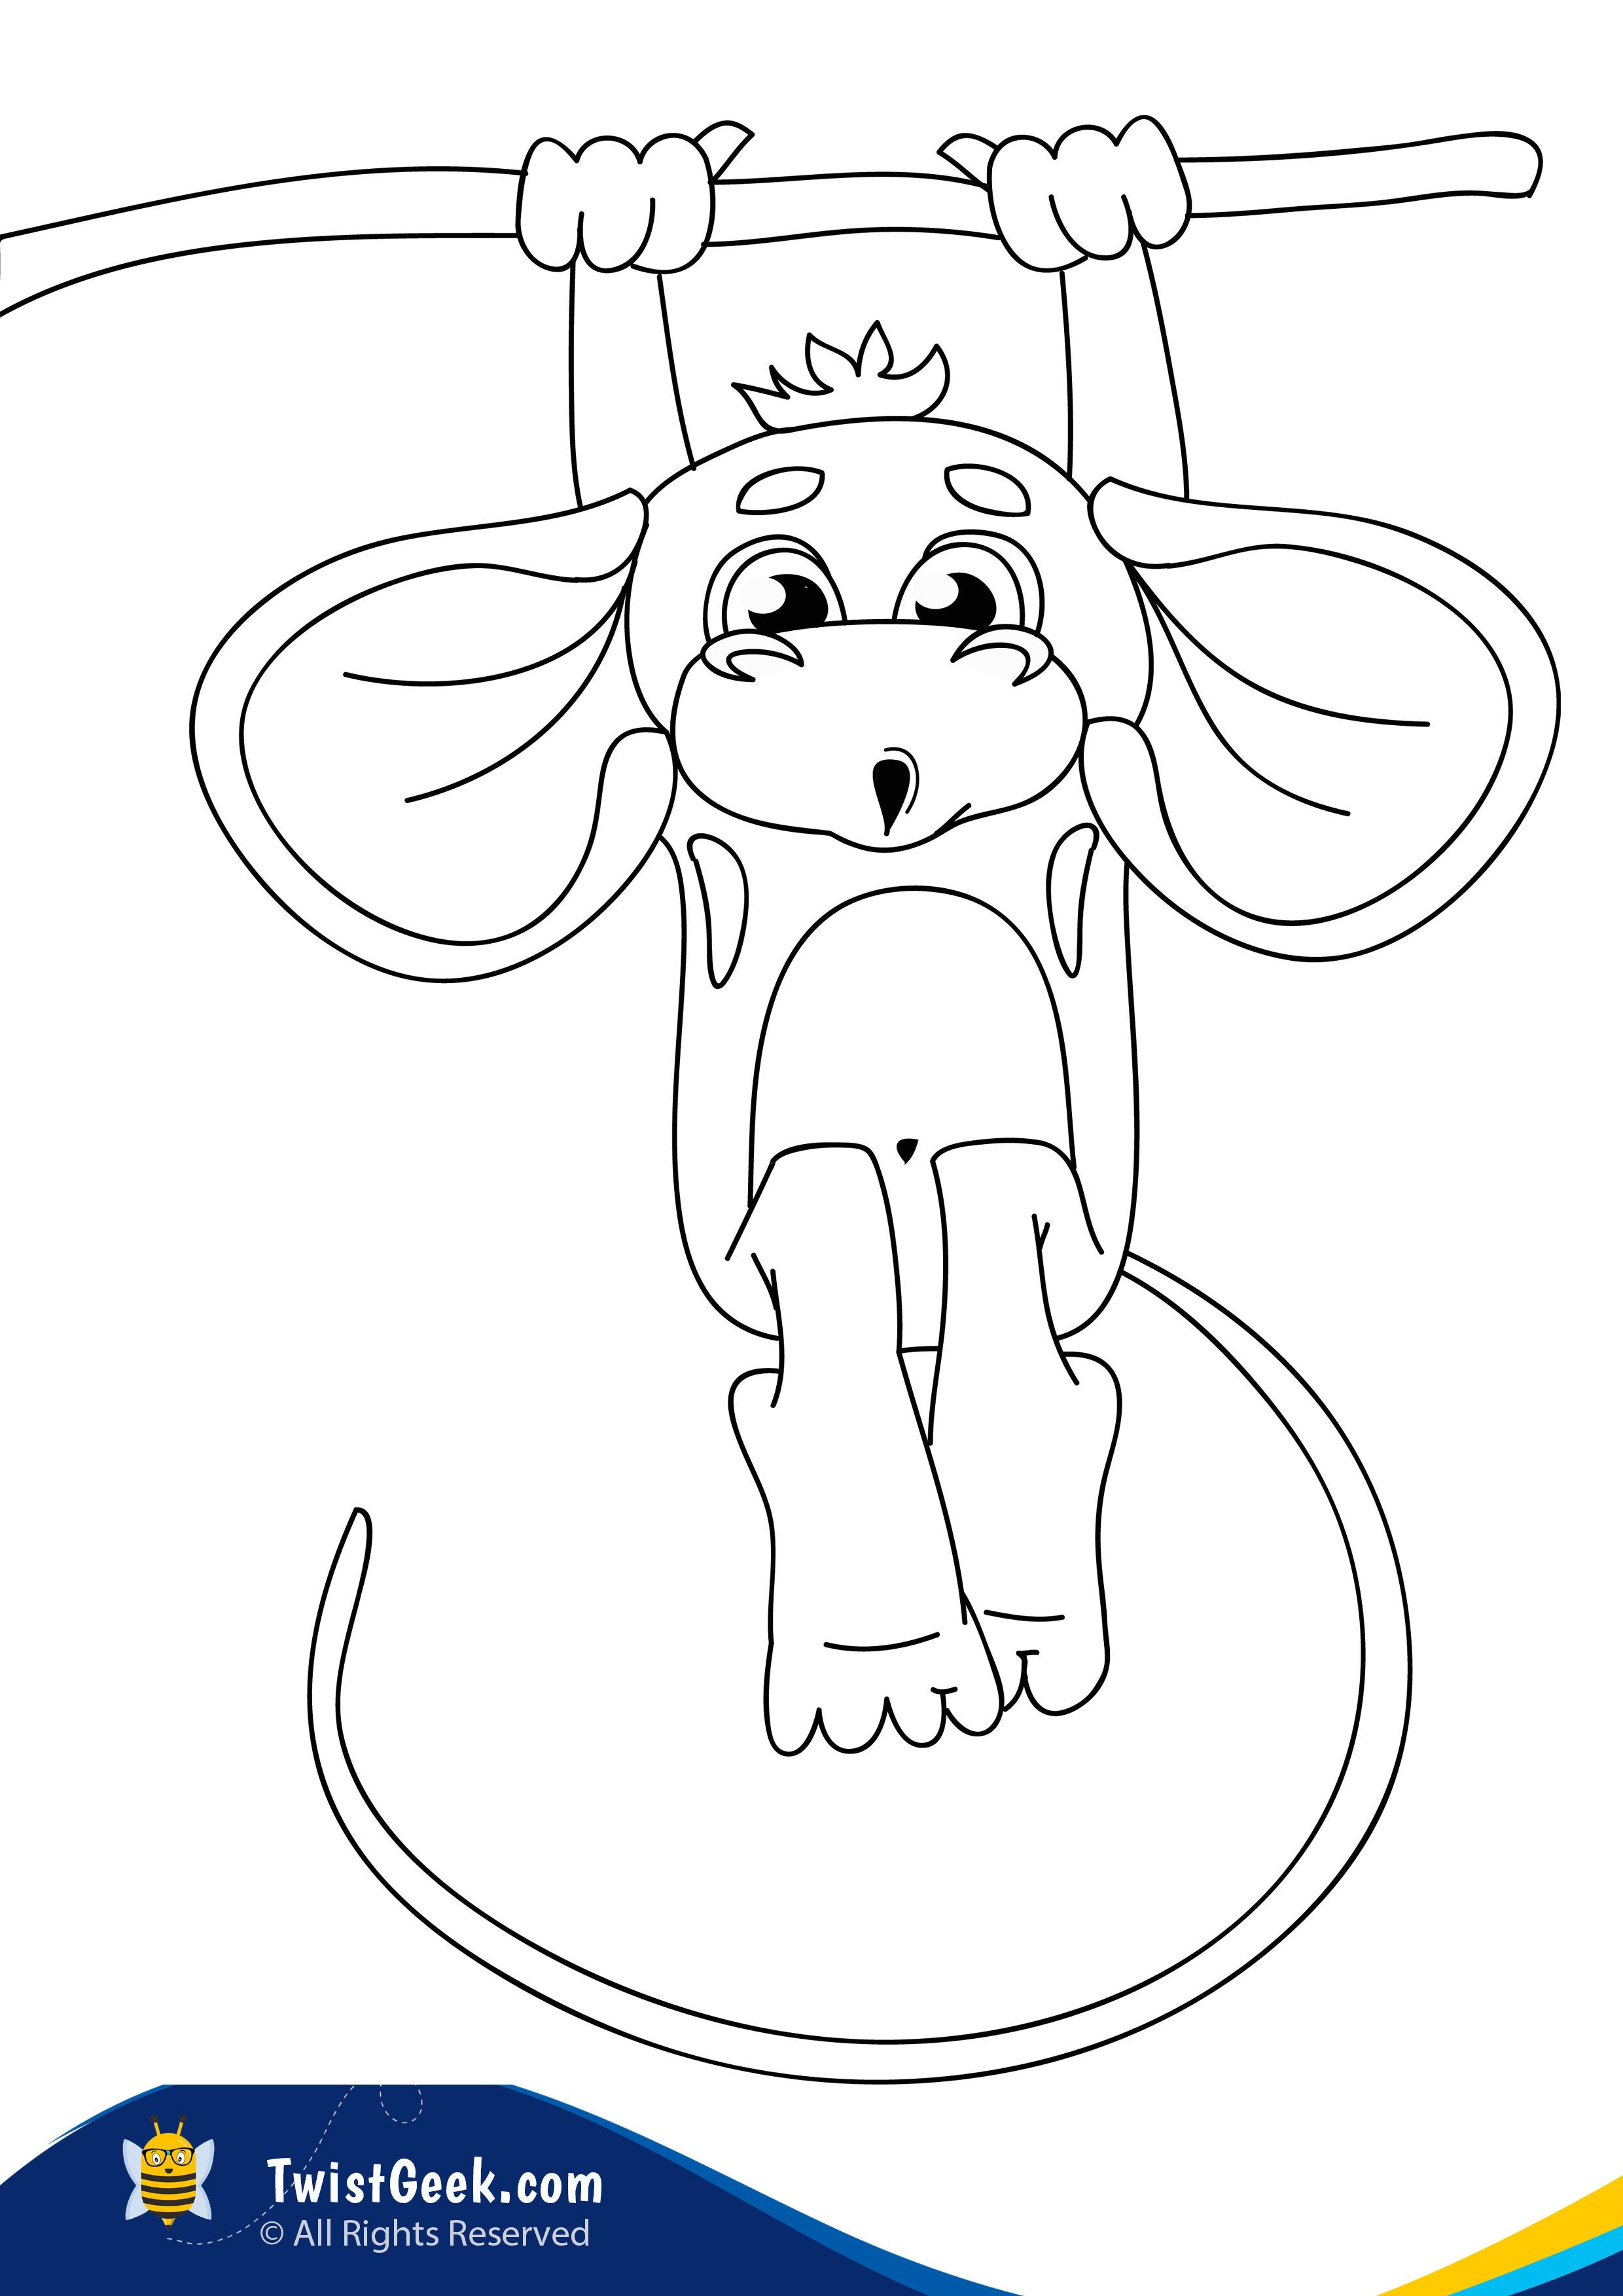 Free A4 Printable Monkey Coloring Pages TwistGeek i 2020